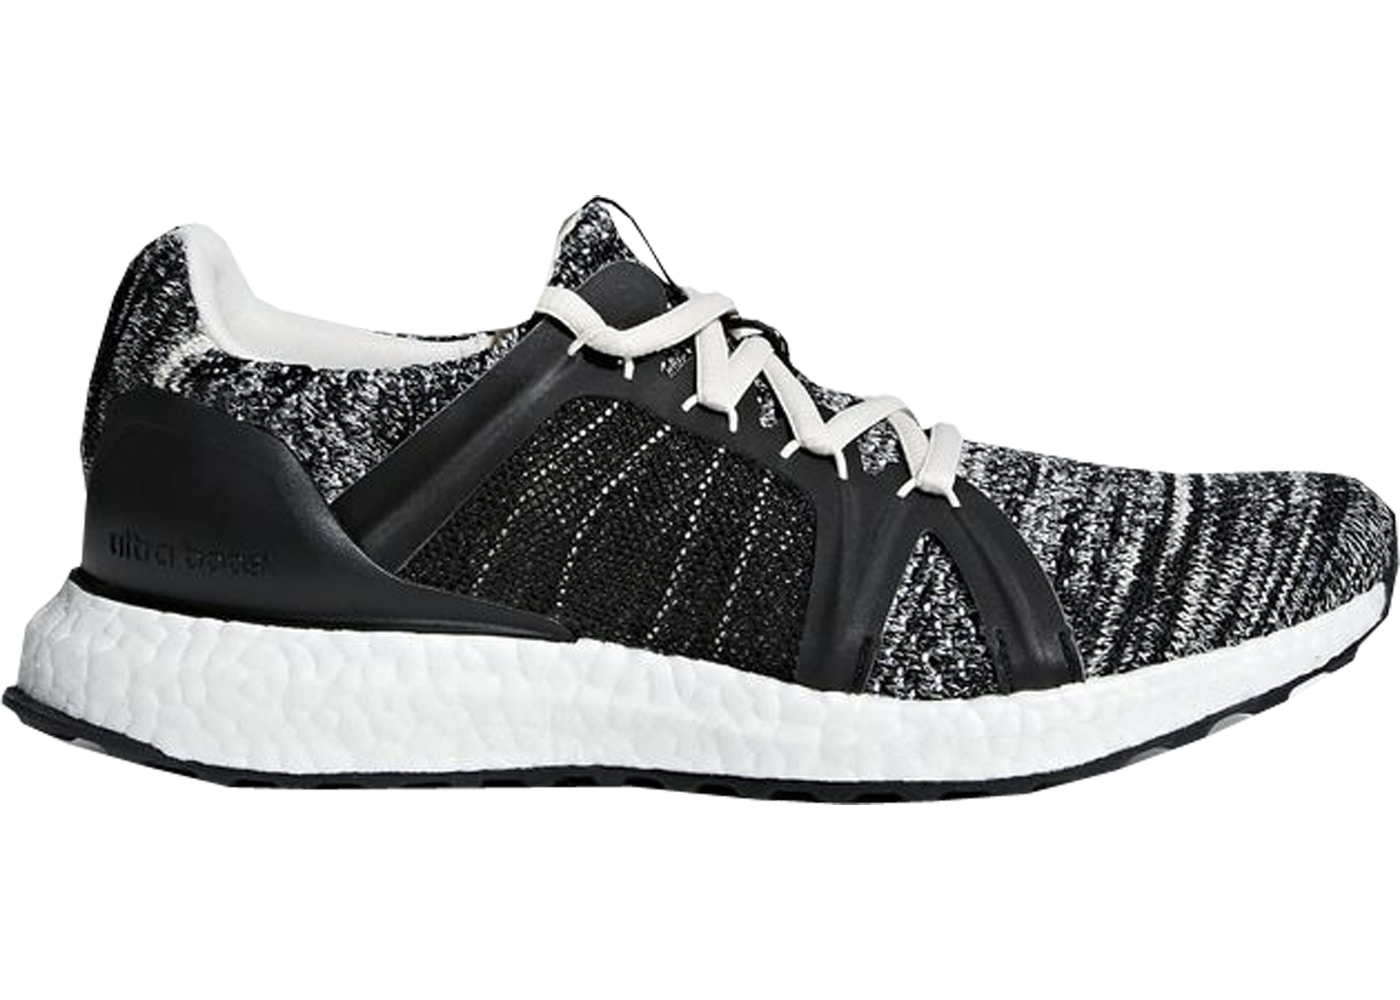 9c68e7acb0d adidas Ultra Boost Size 7 Shoes - Lowest Ask